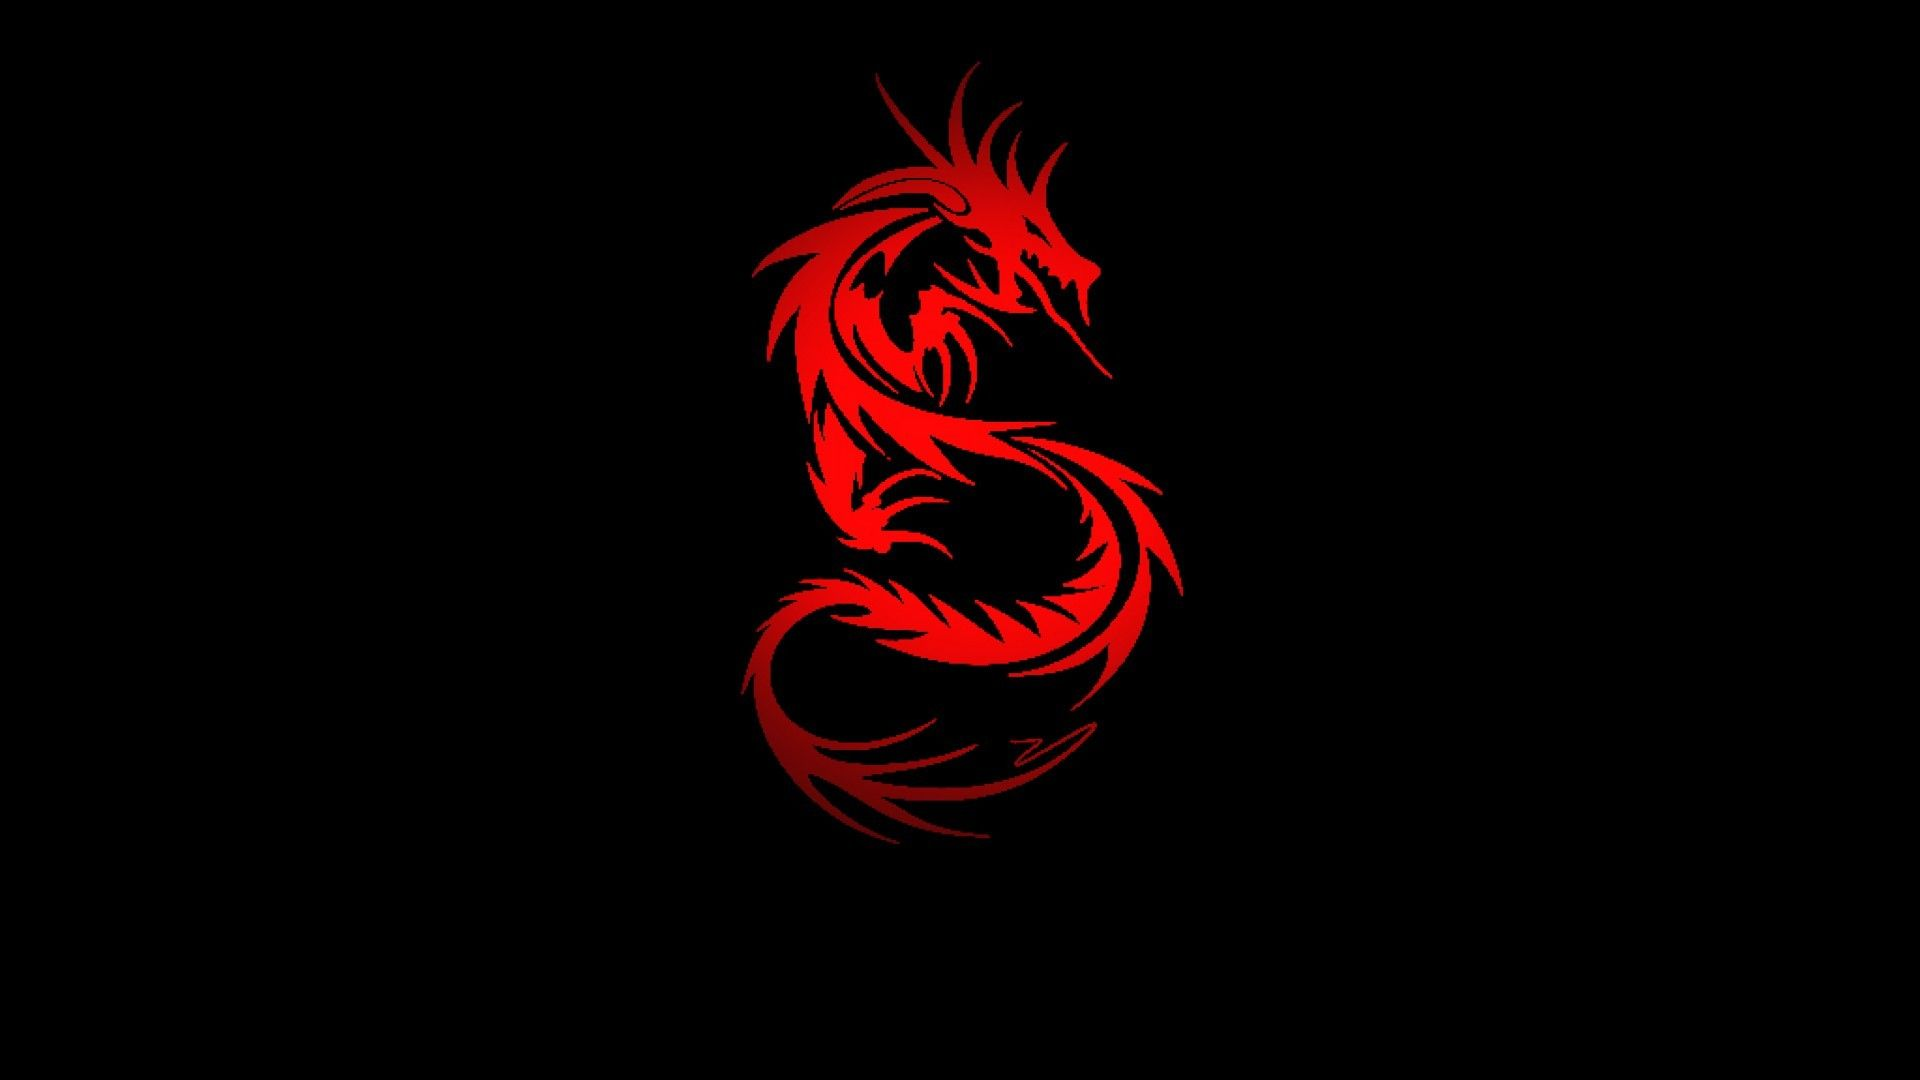 1920x1080 Red Dragon Wallpapers Hd Free 562608 Dragon Rider In